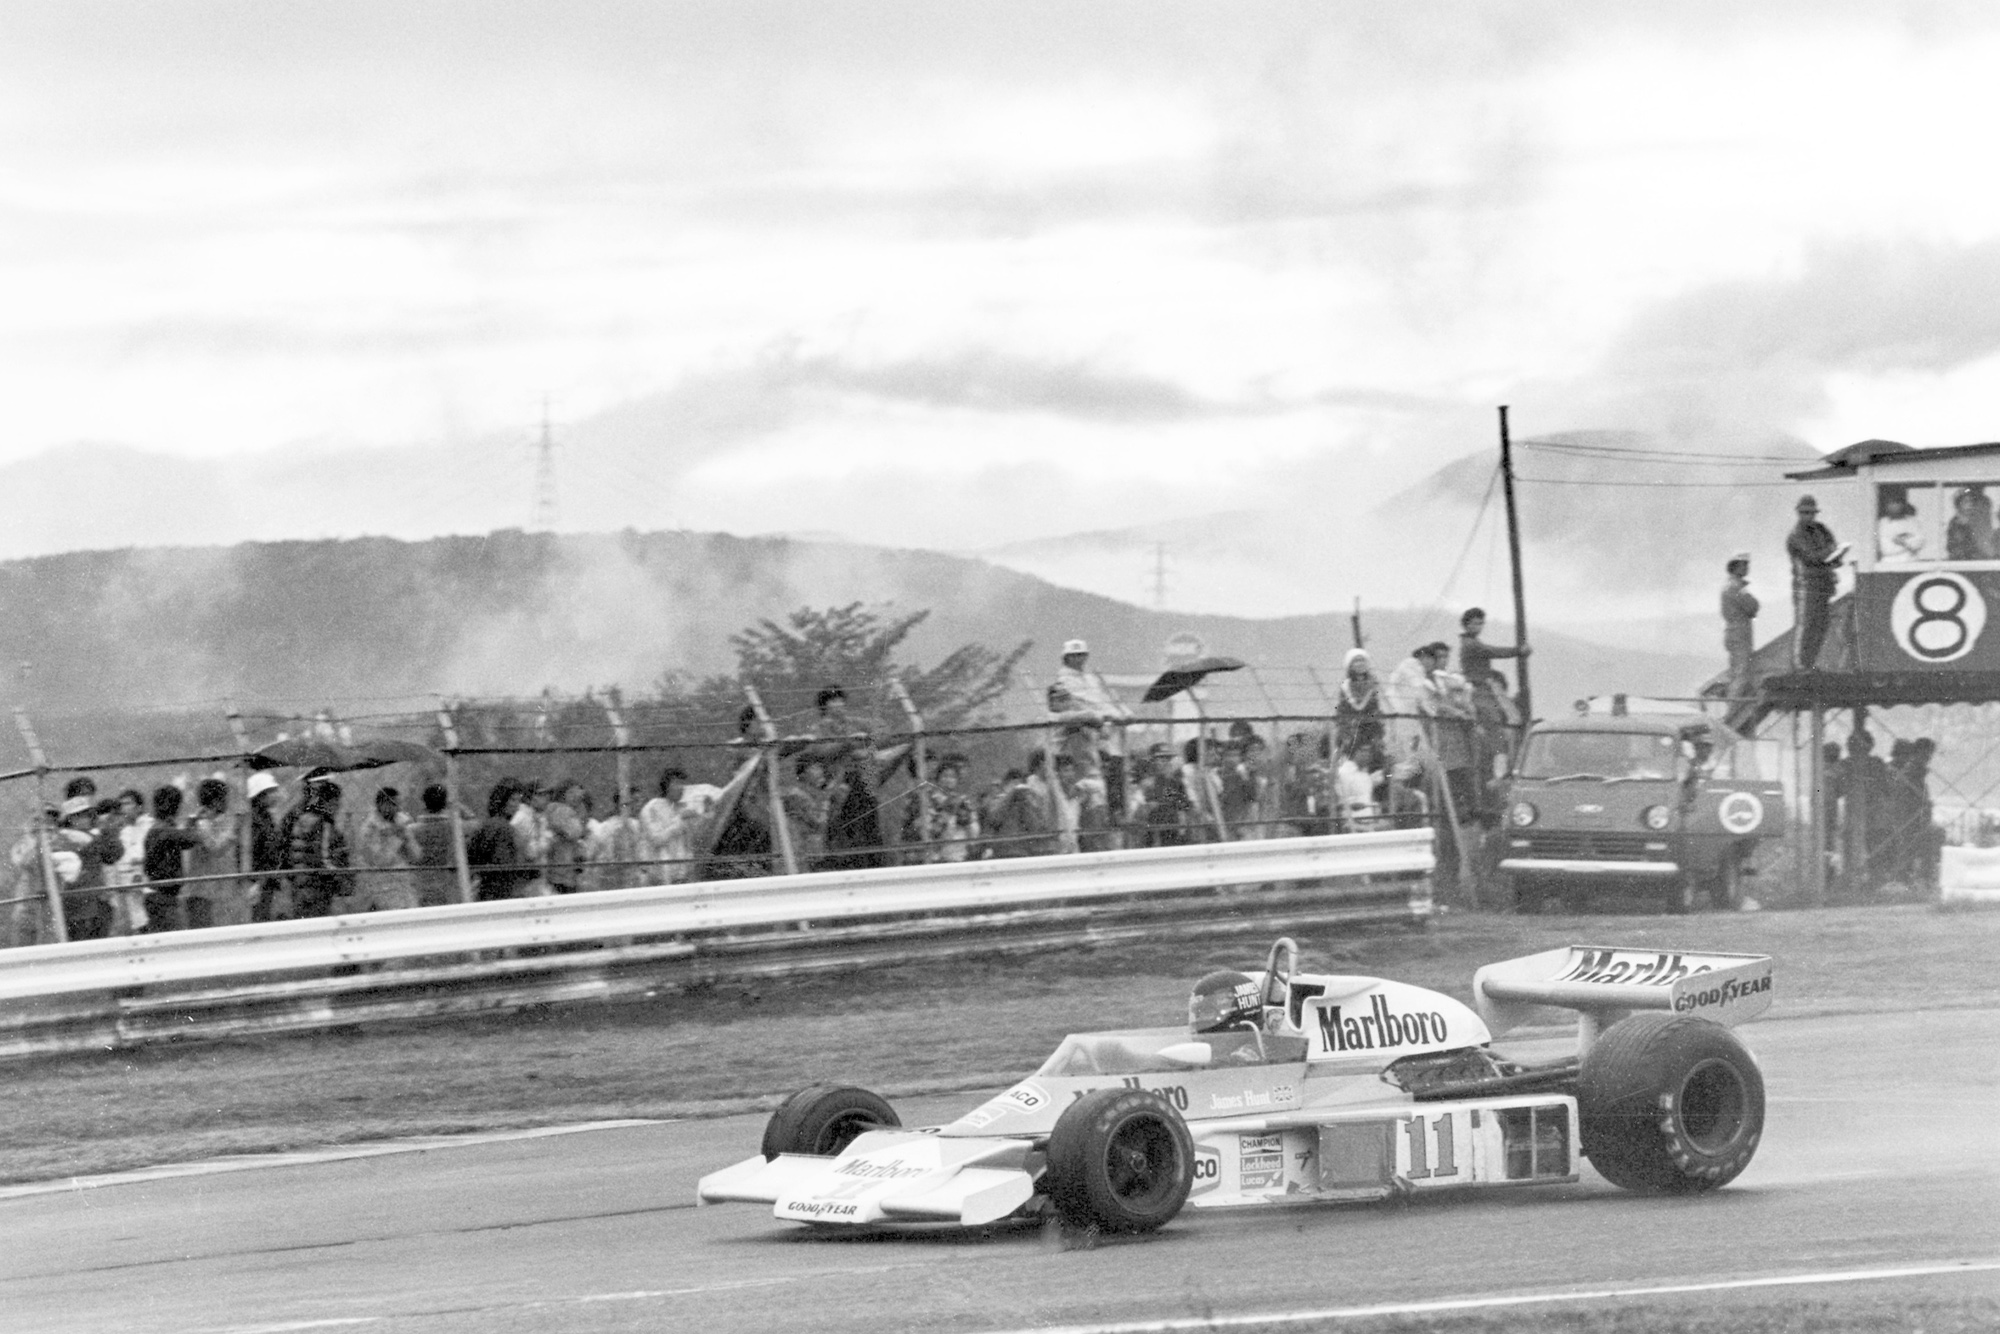 James Hunt at the 1976 Japanese Grand Prix in Fuji